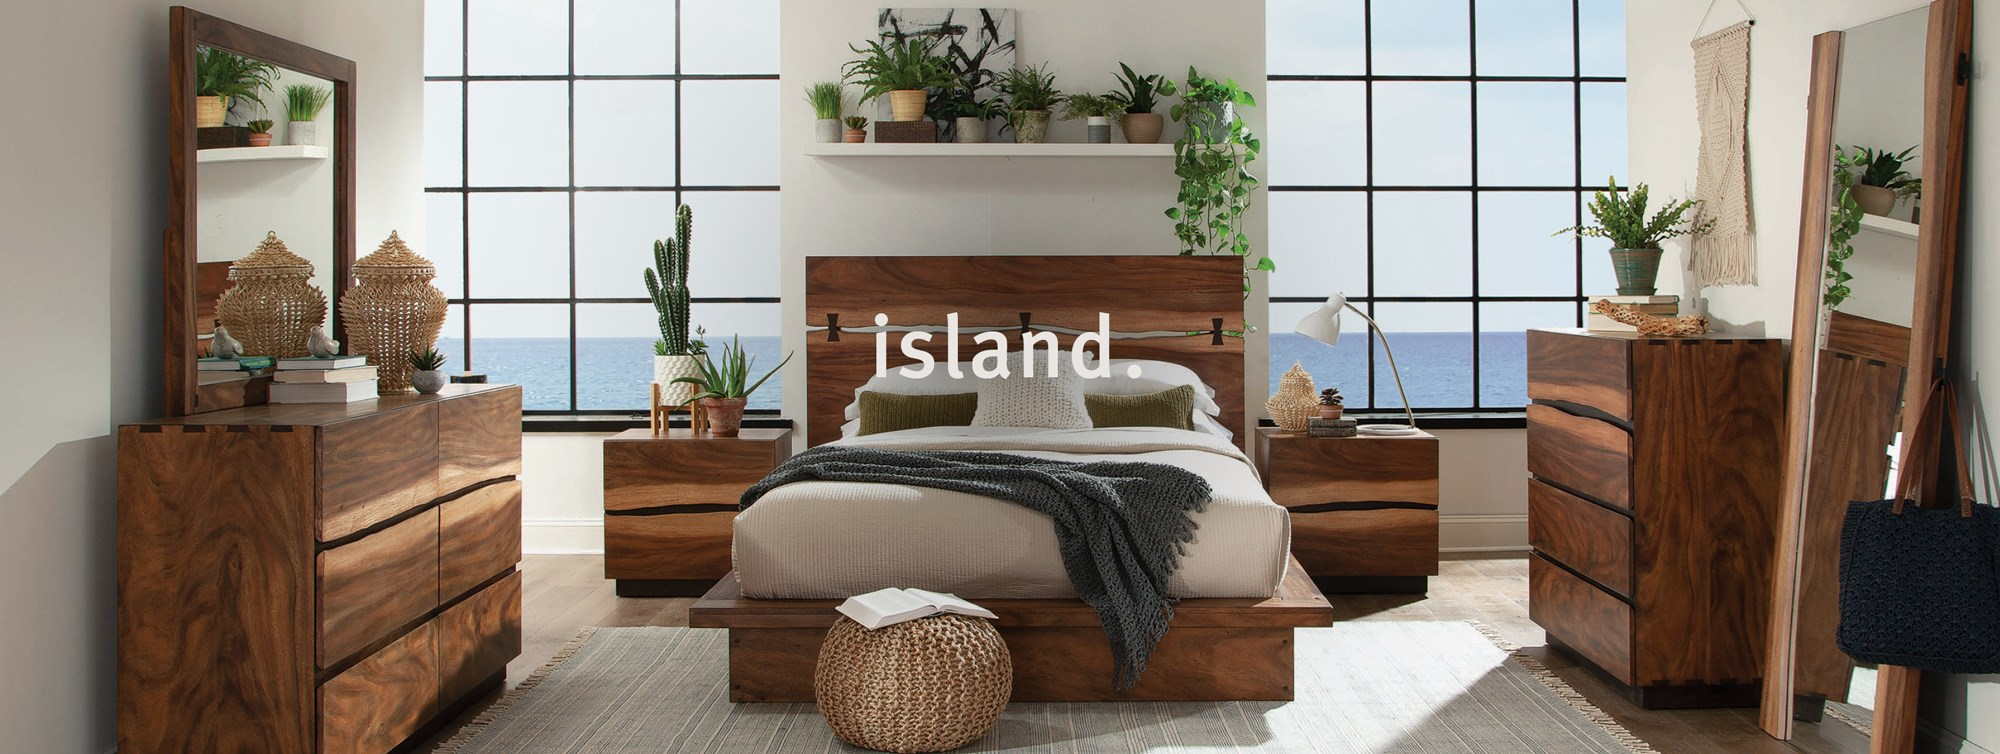 Shop Island Furniture | Abode | Hawaii, Oahu, Big Island ...